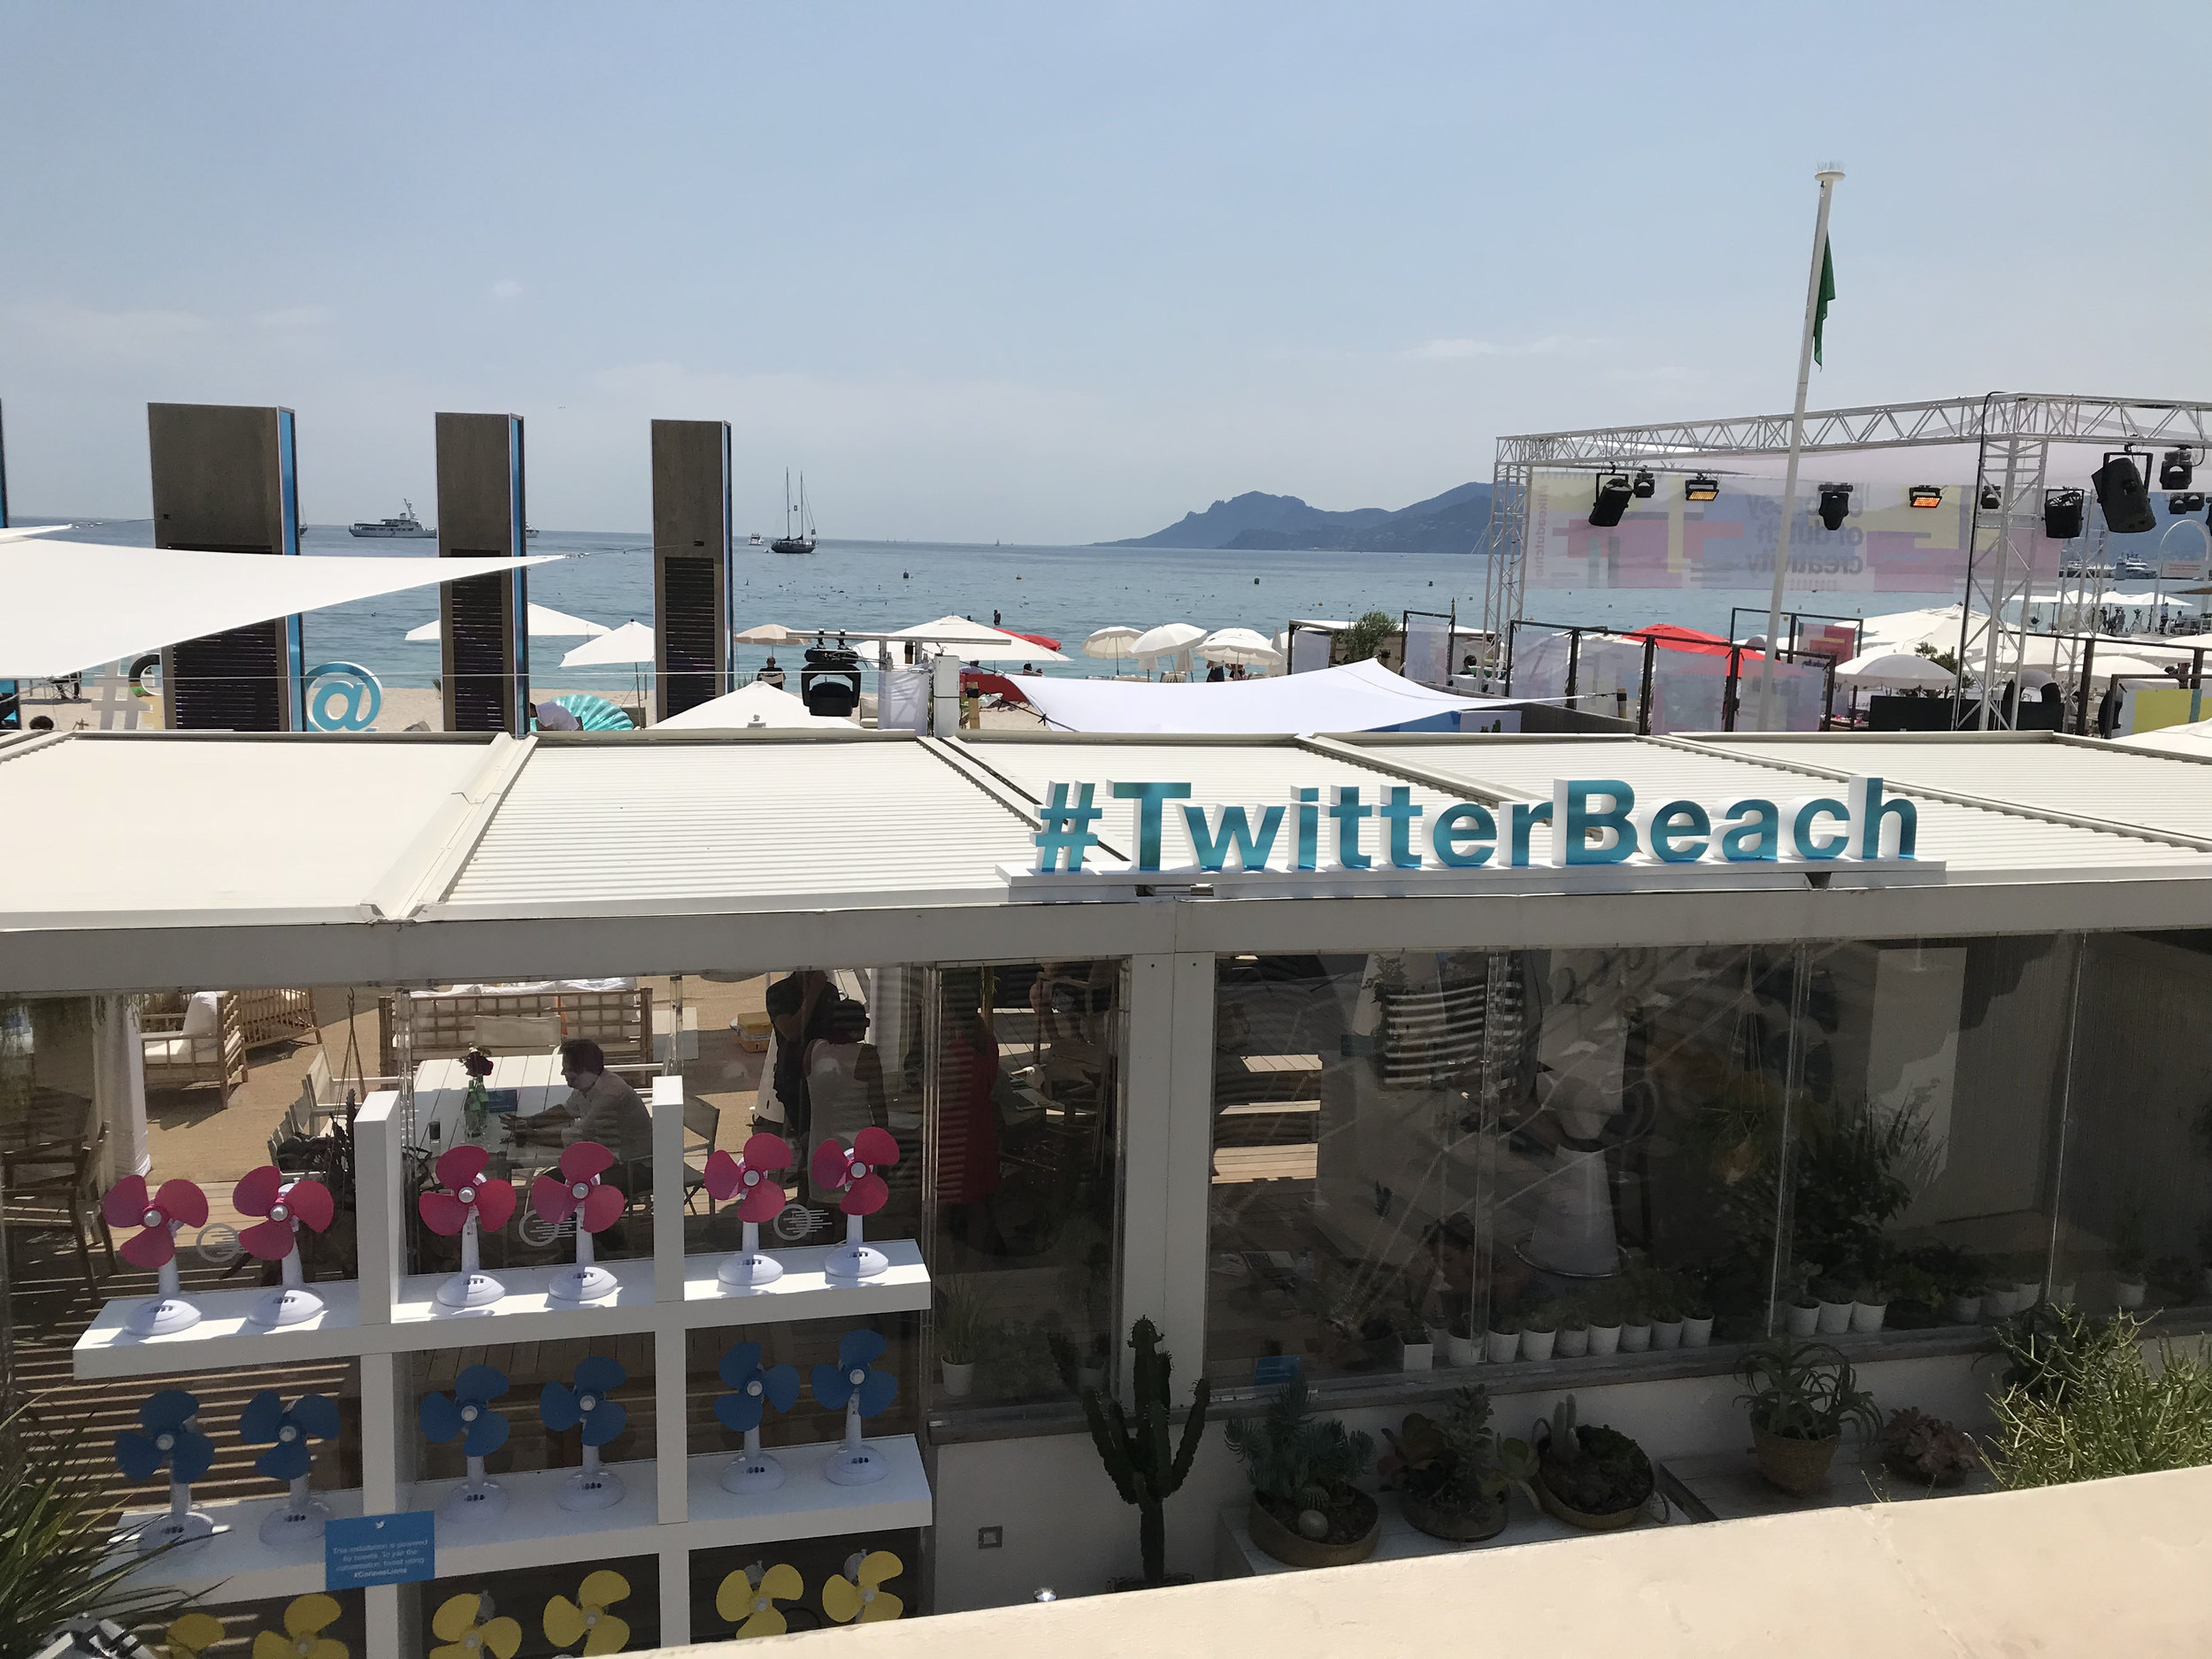 #TwitterBeach just beside the TNW event